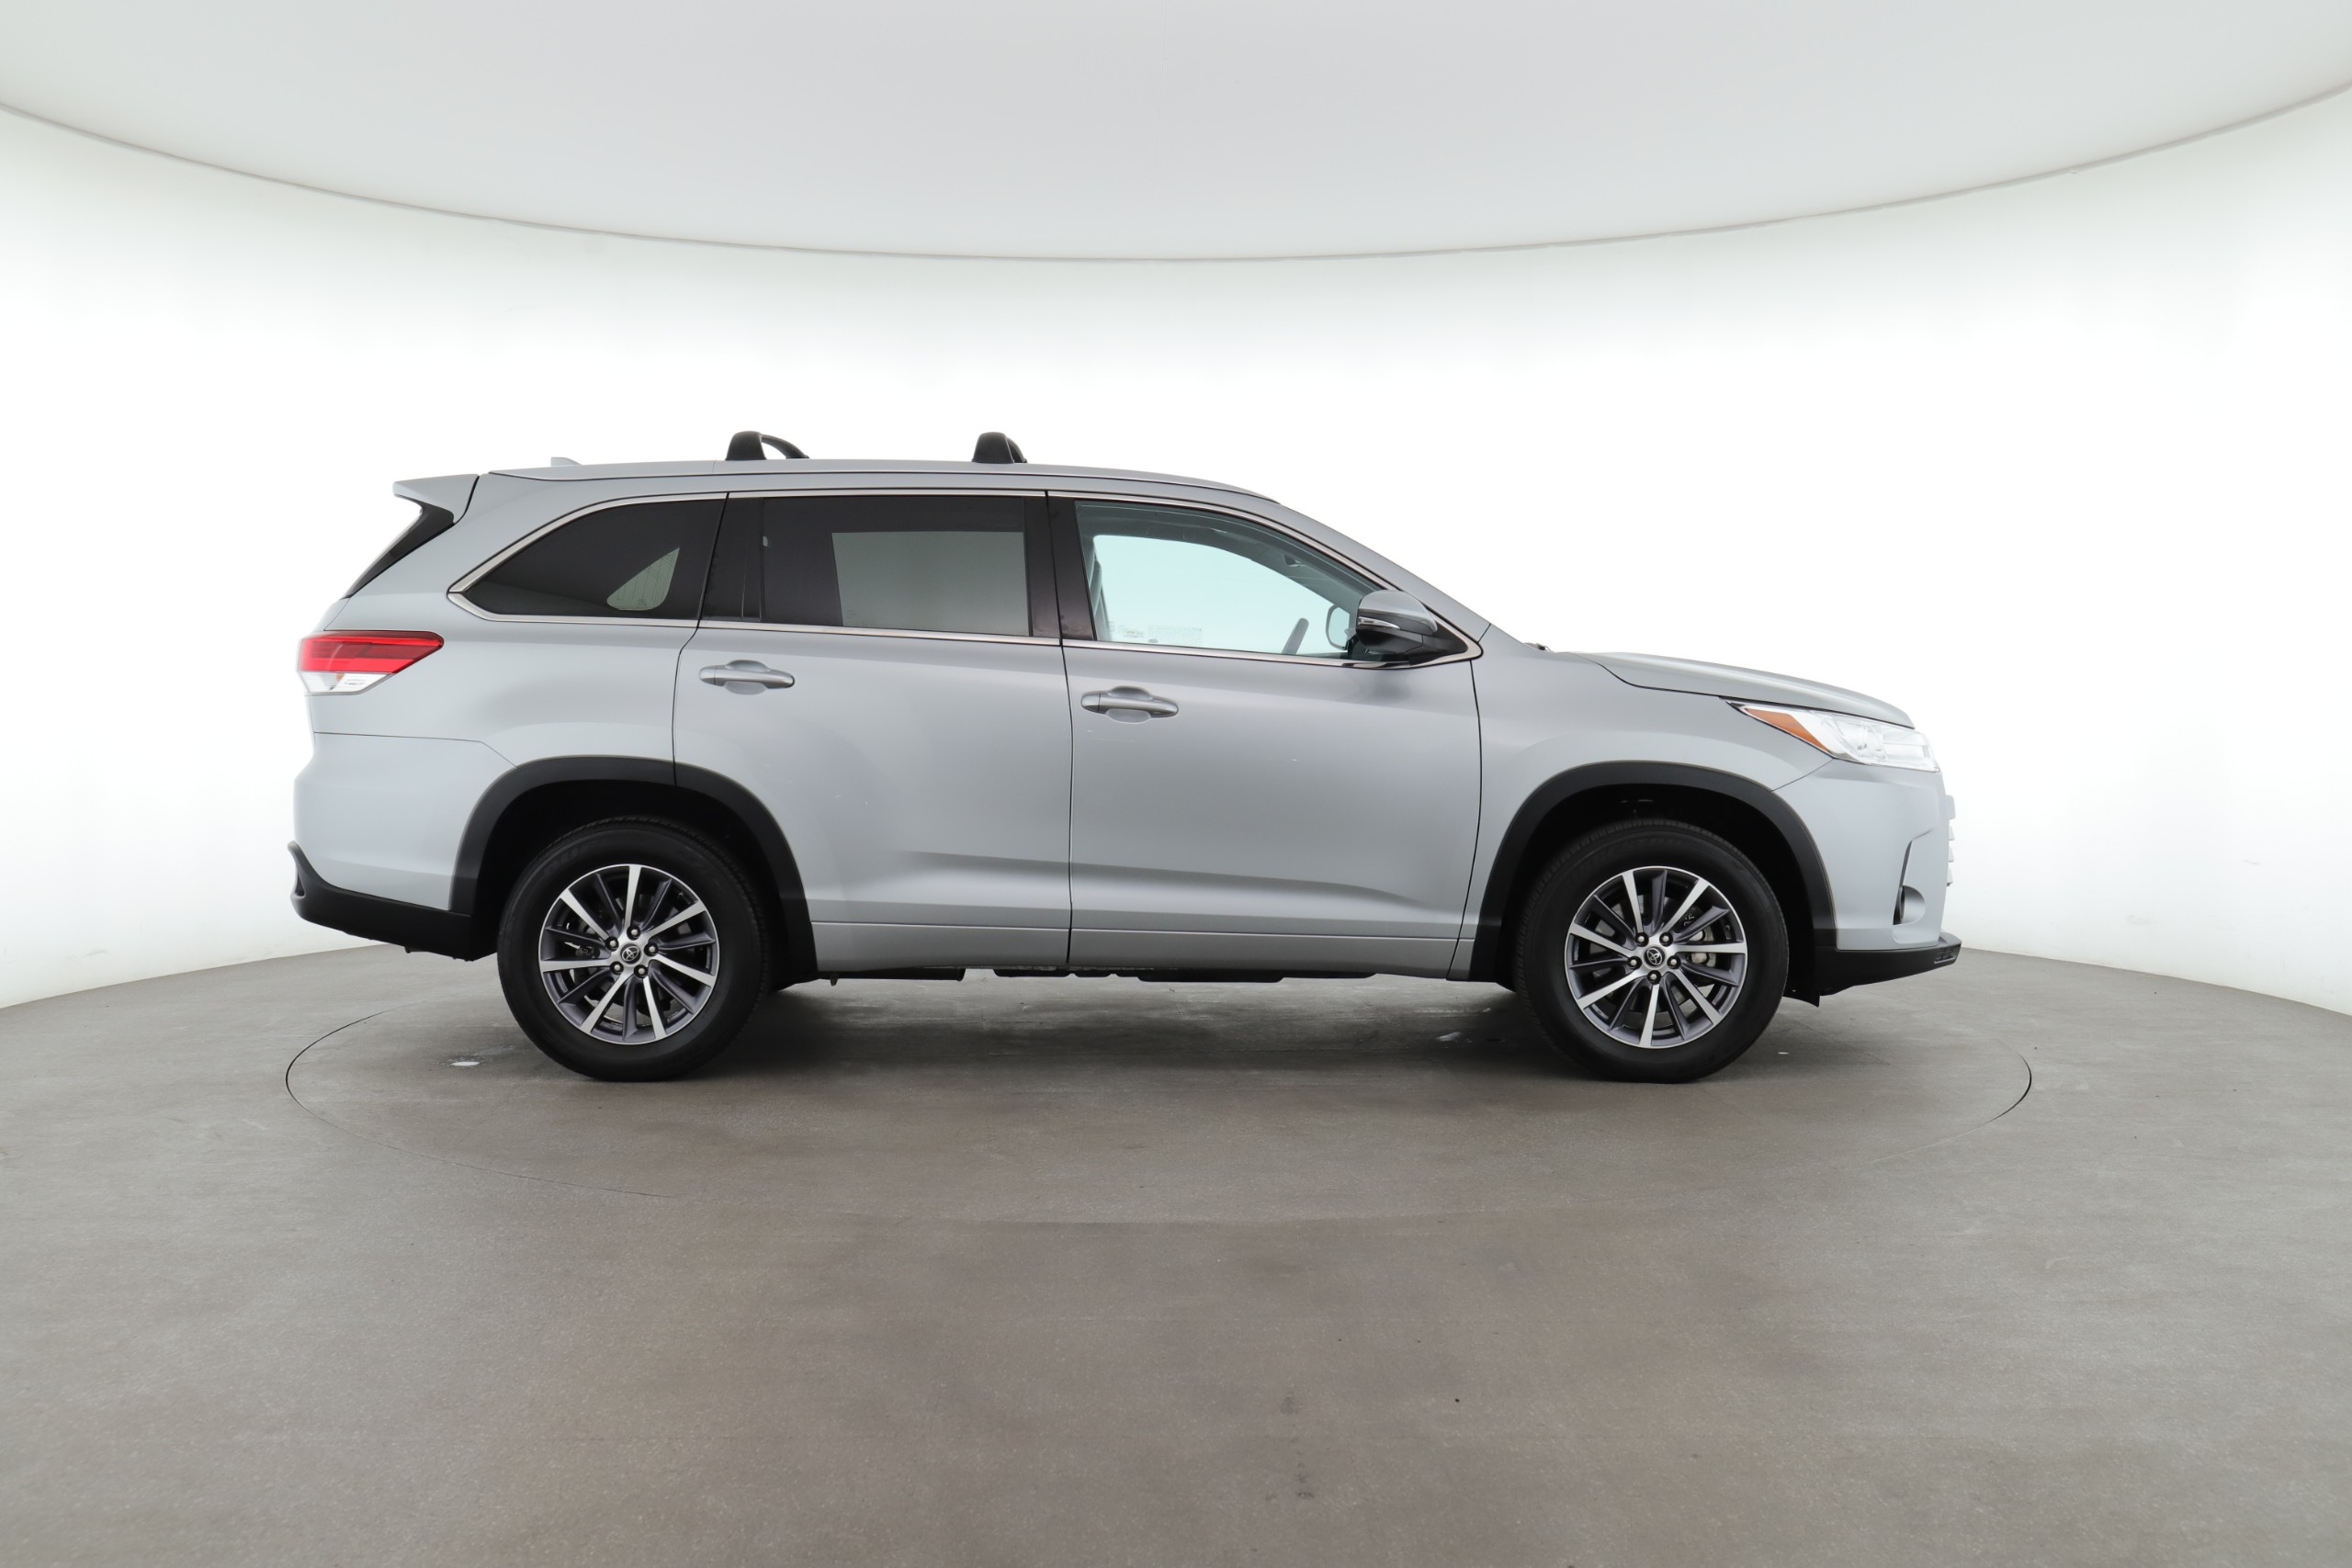 Toyota Highlander vs. Toyota 4Runner: Pros, Cons & Which One is Better for You